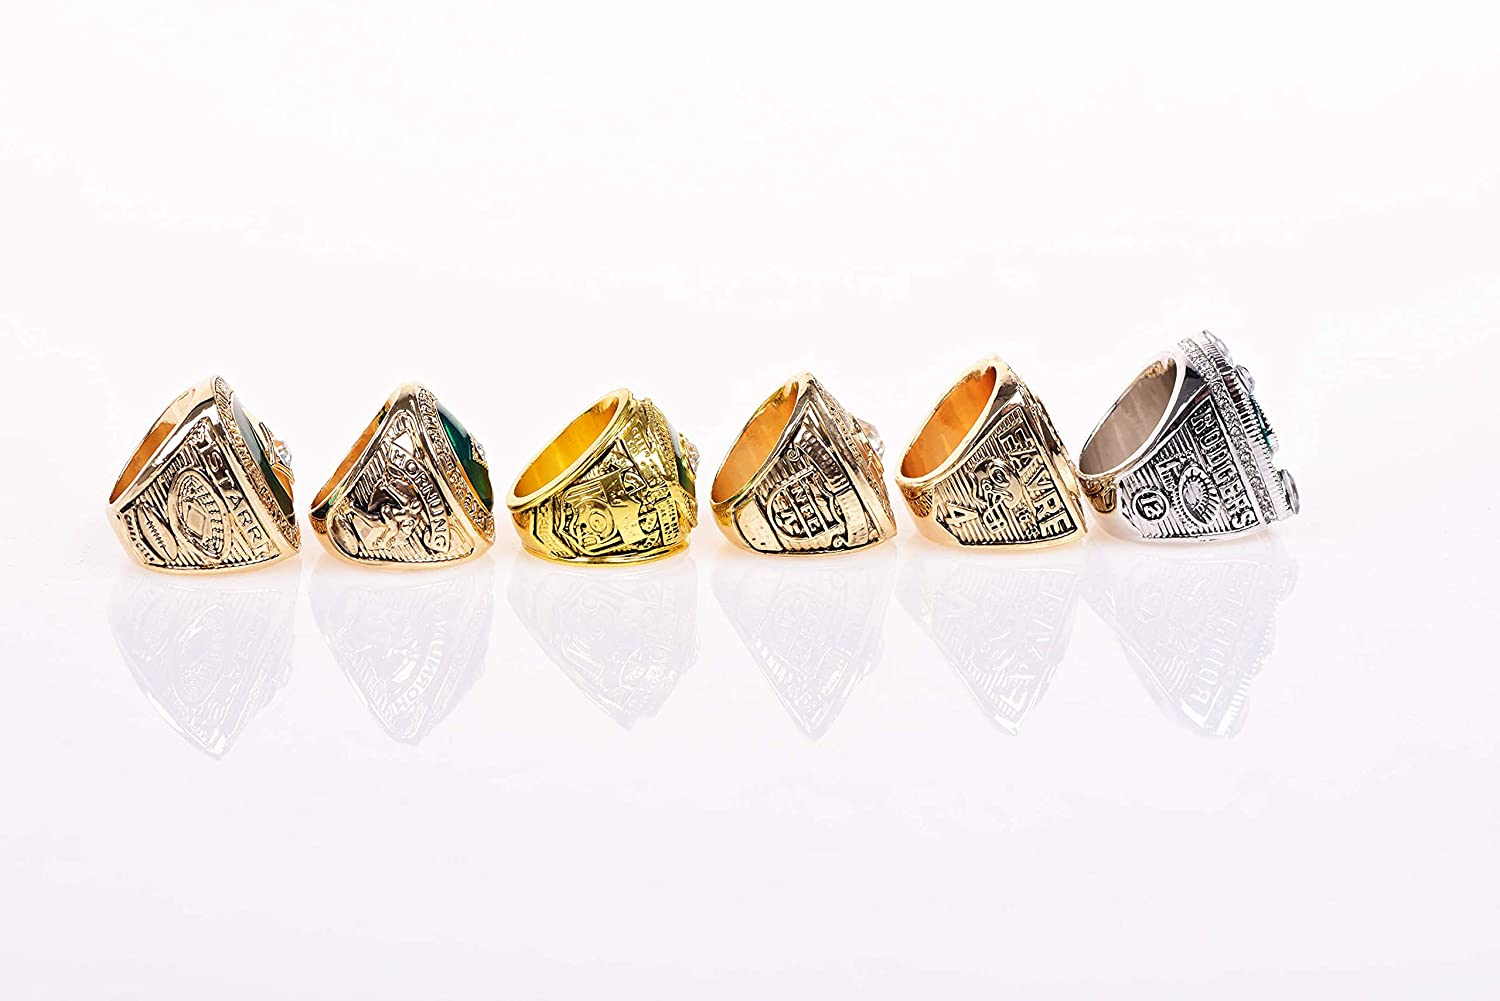 Set of 6 Packers Championship Ring by Display Box Set